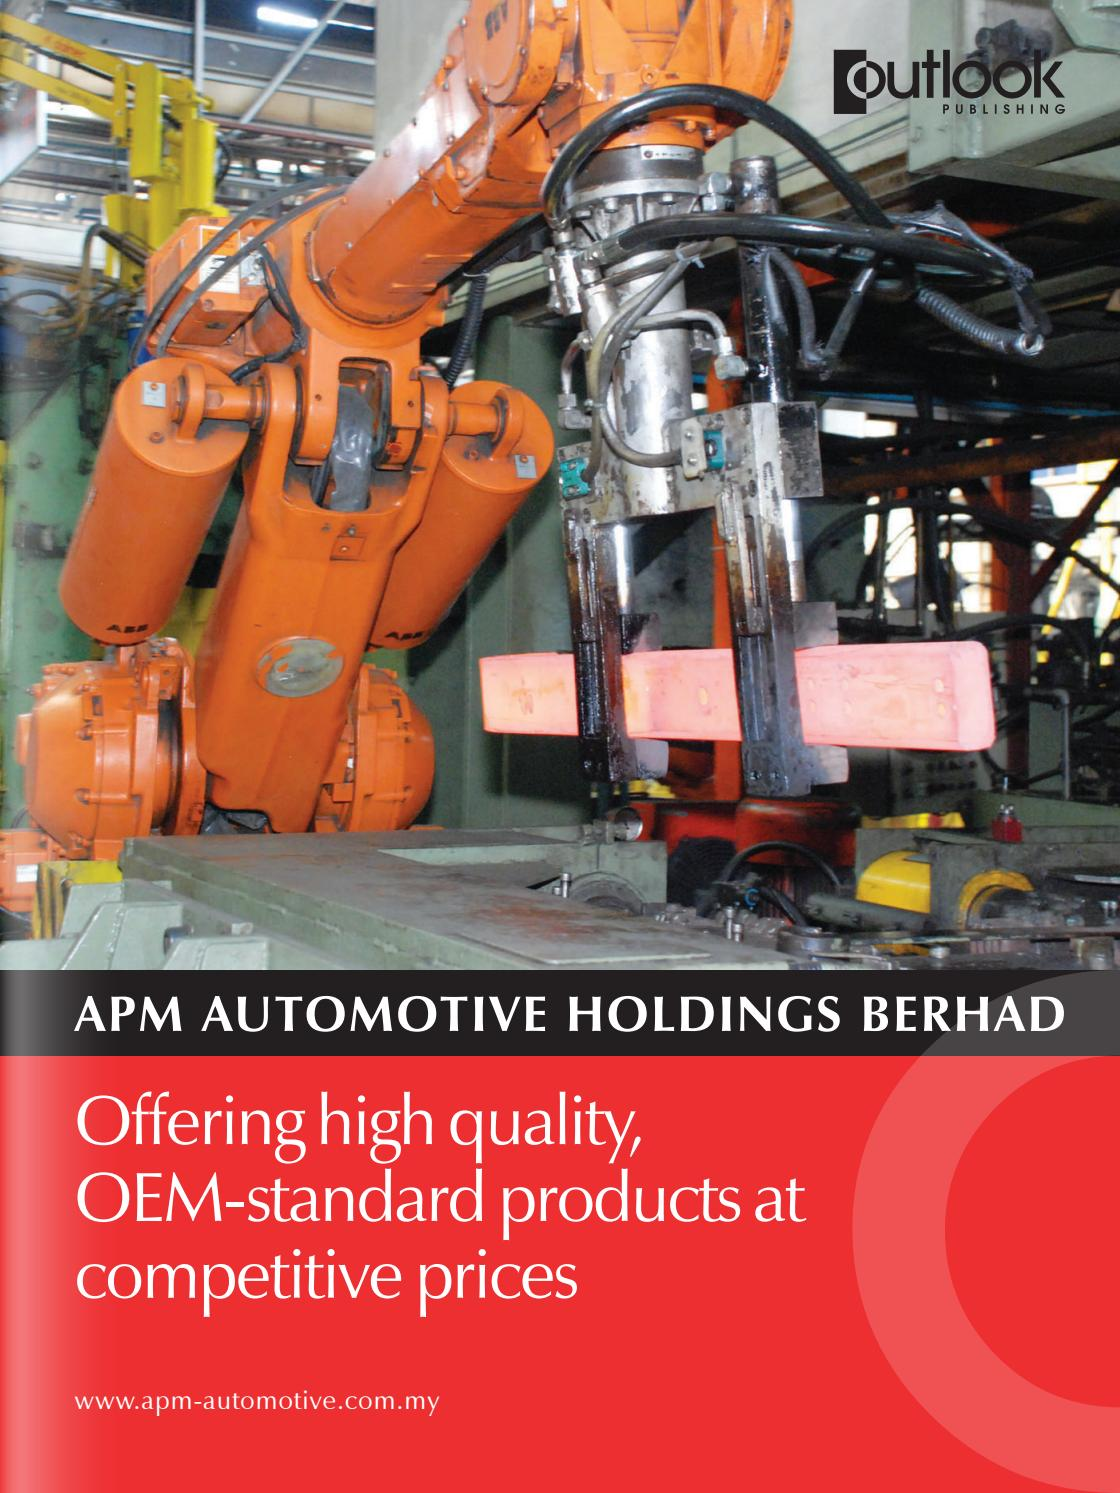 apm automotive holdings berhad Apm is a malaysian automotive parts manufacturer that has expanded to become a major regional supplier and now to global markets we are committed to provide our customers with products of the highest quality.